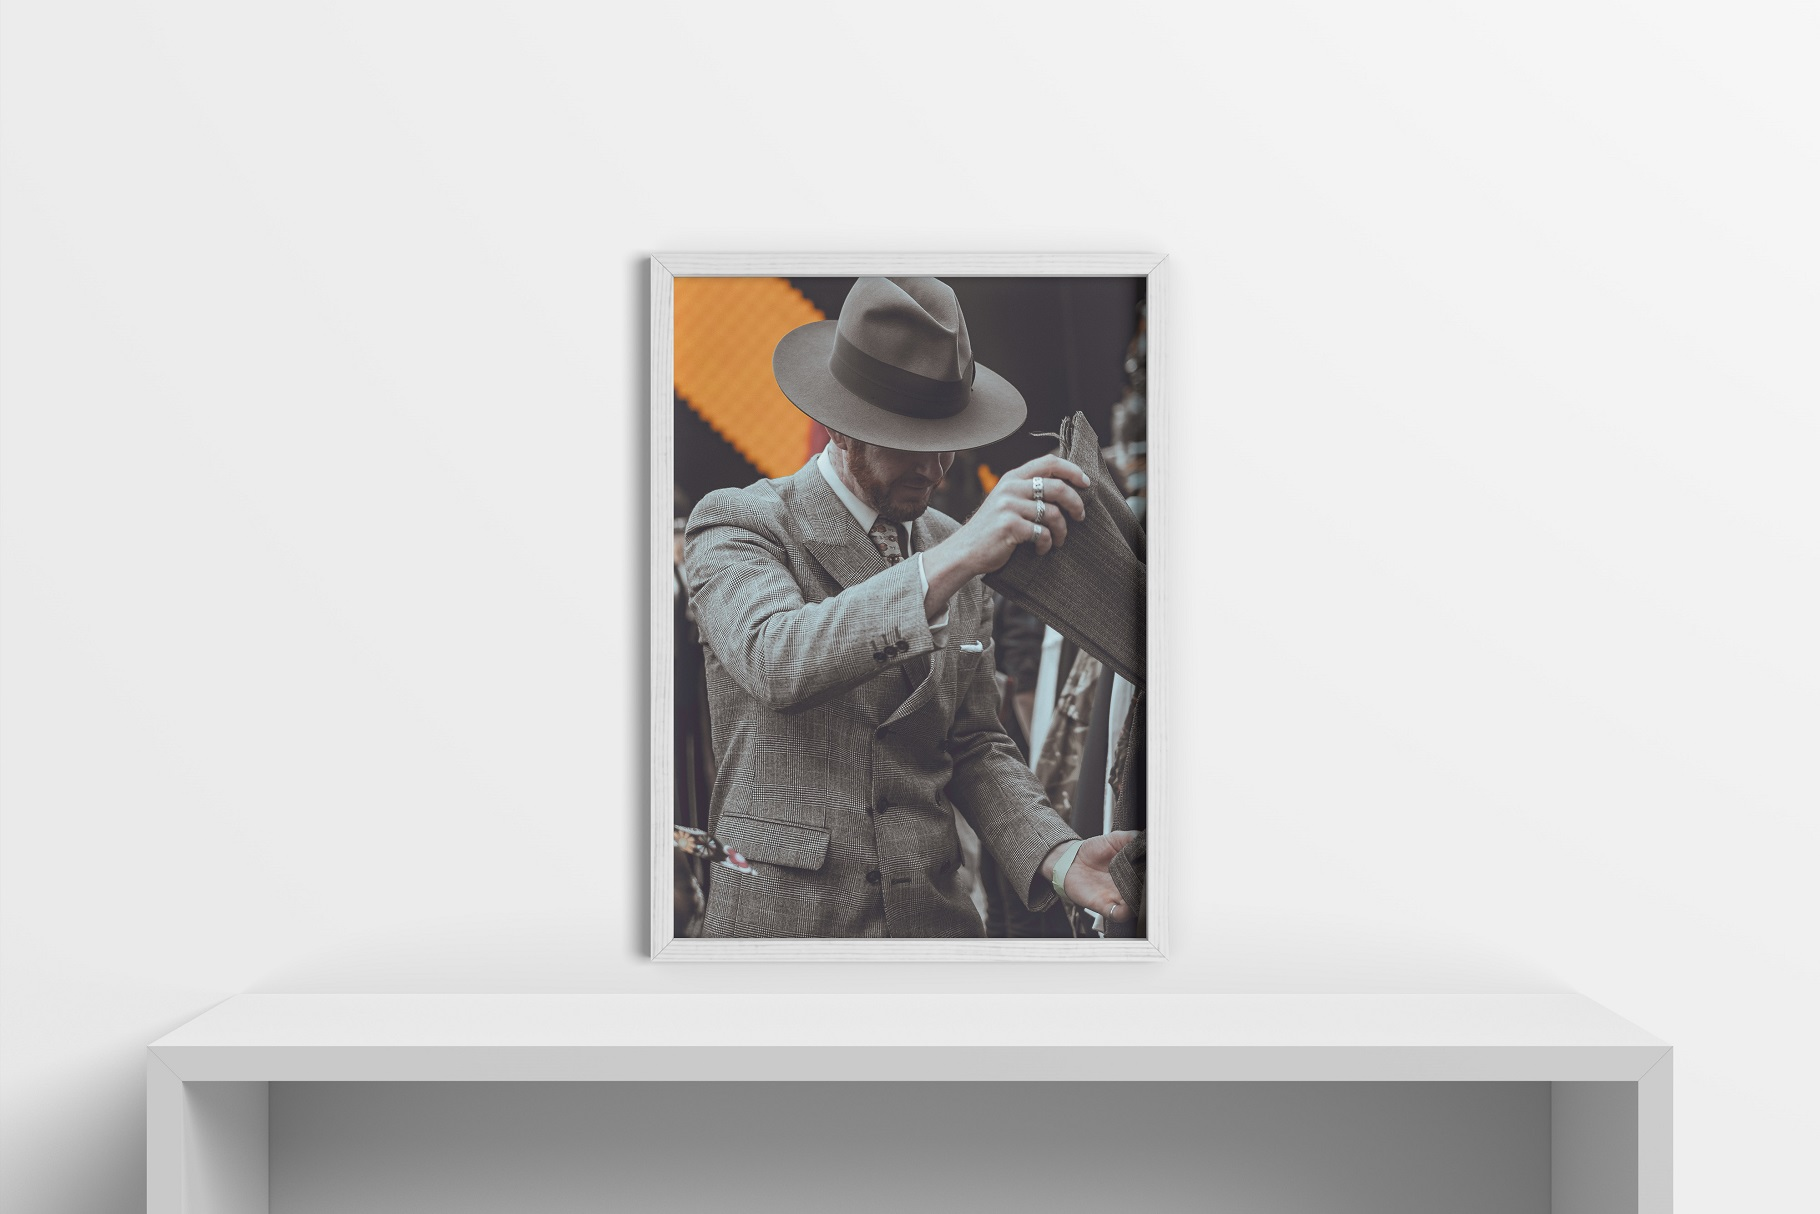 5x7 Inches Photo Frames Mockups example image 6